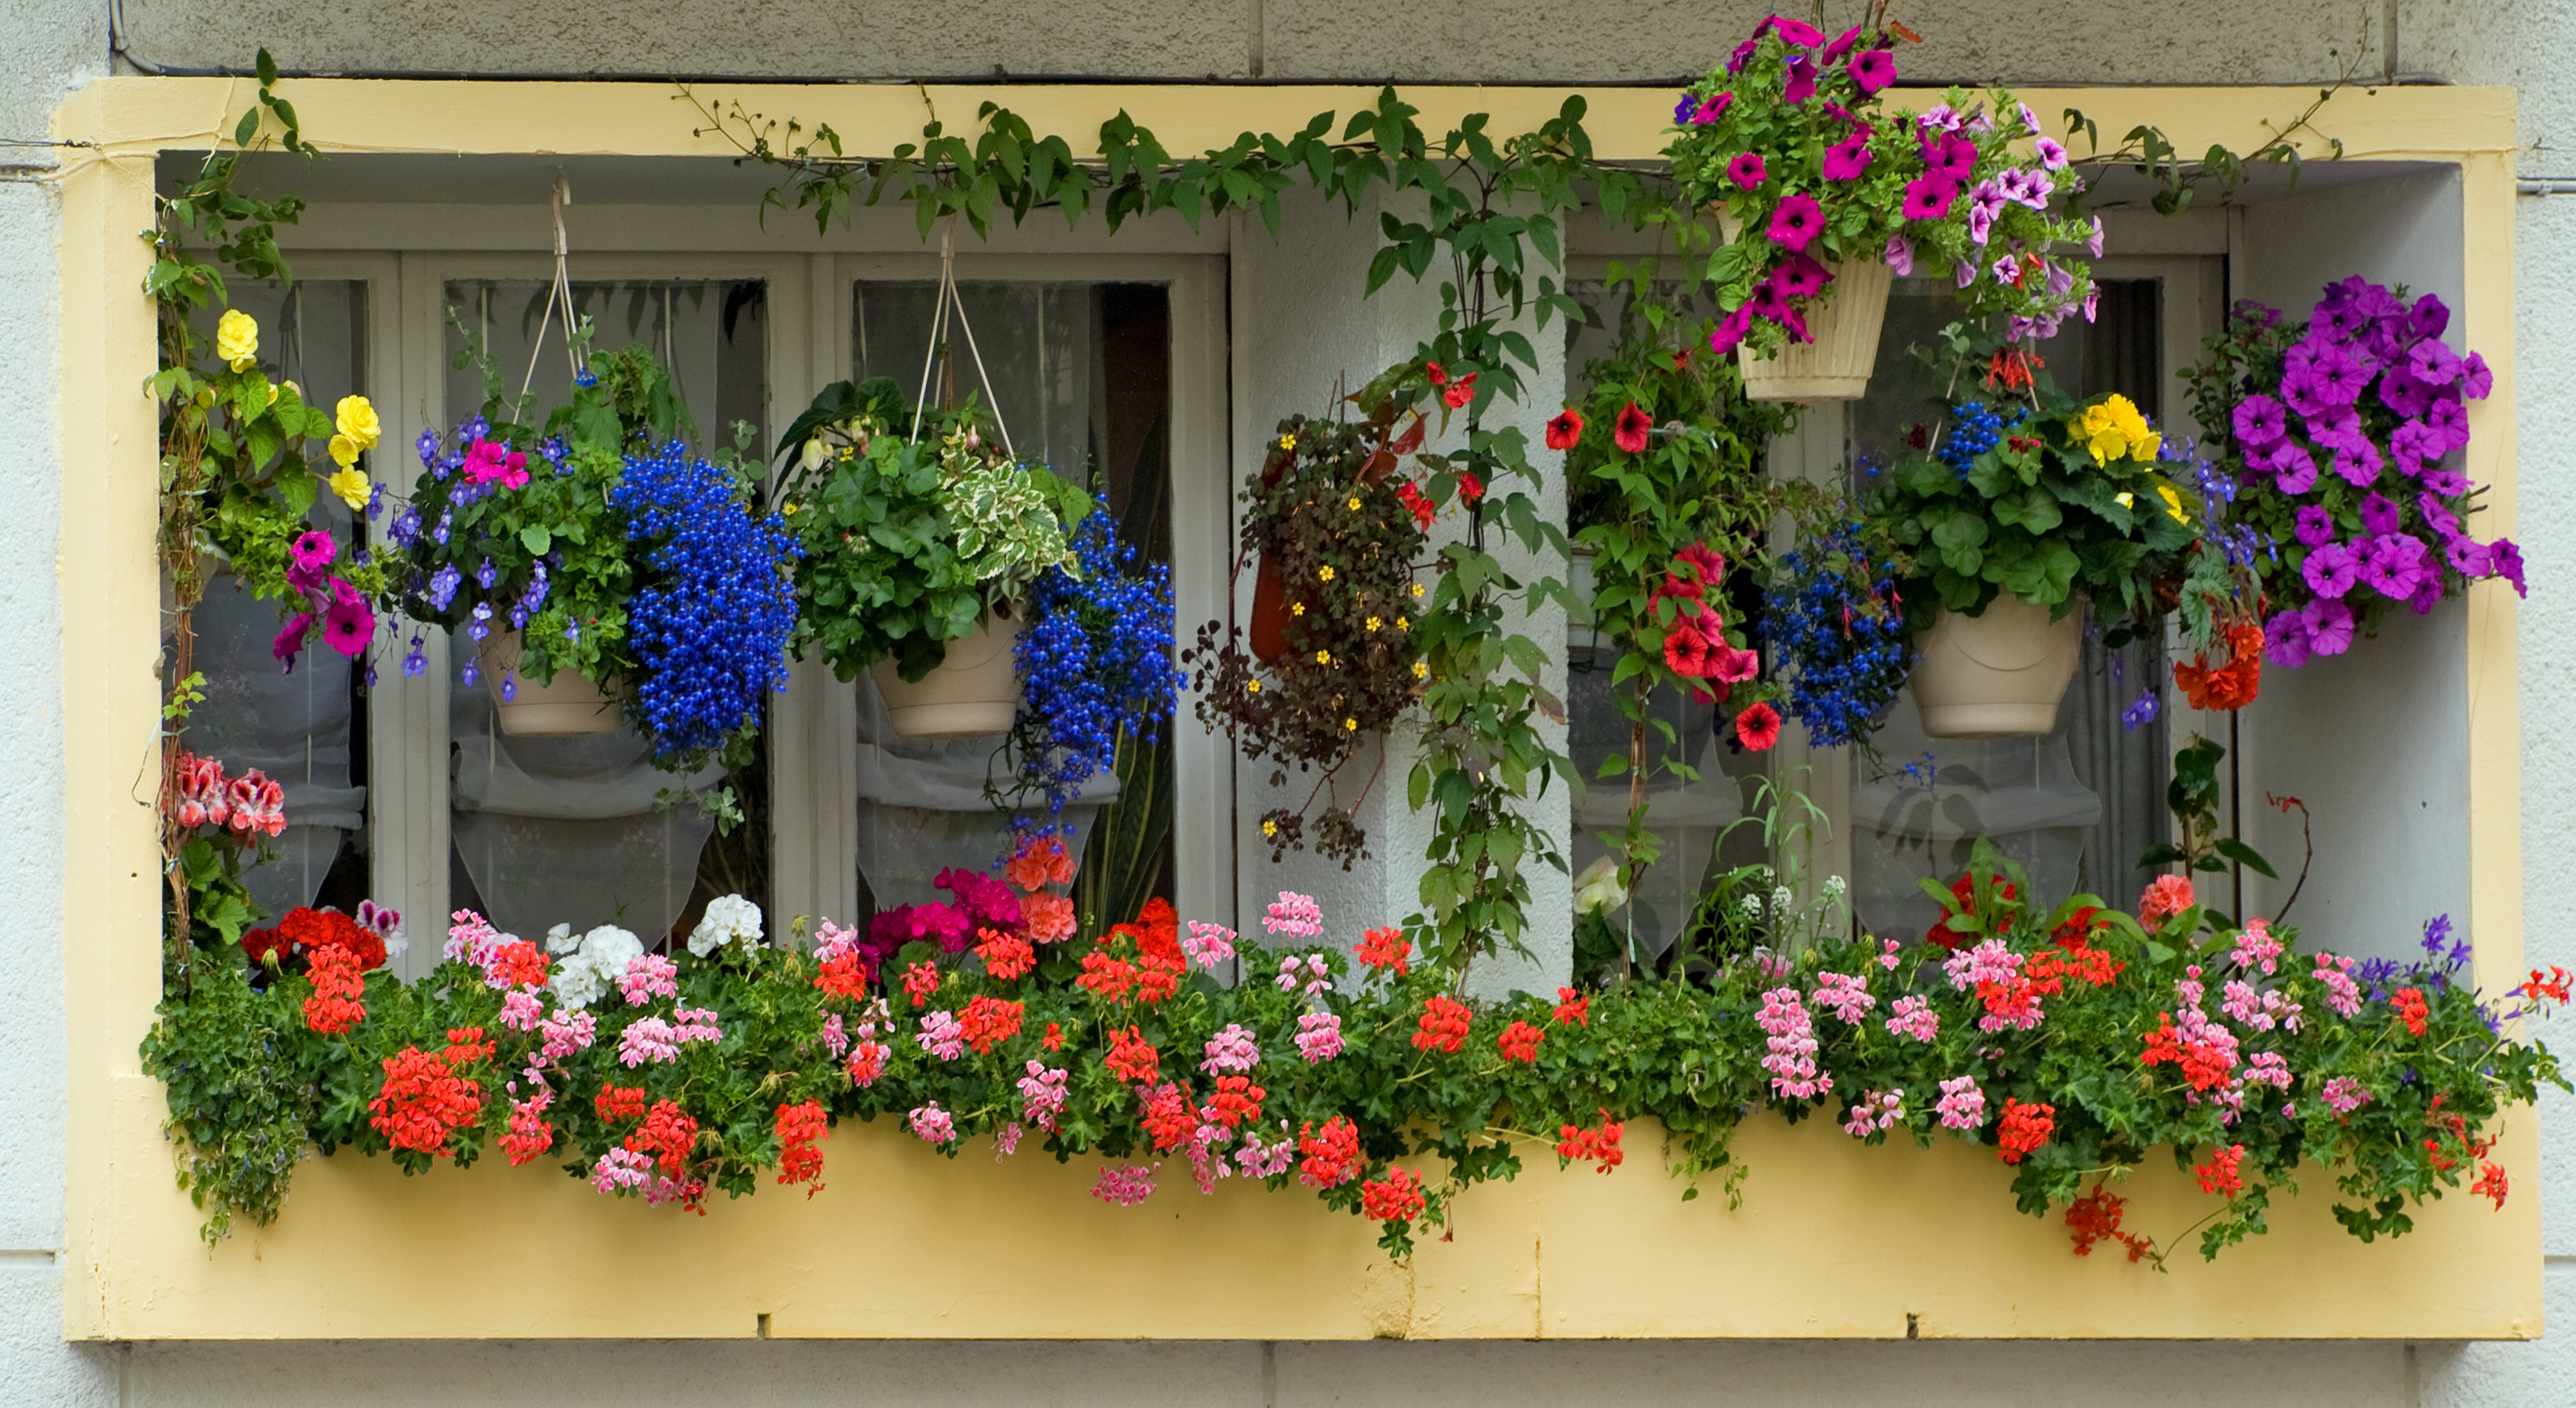 Flowers For Hanging Baskets In Part Shade : File windowboxes arras france g